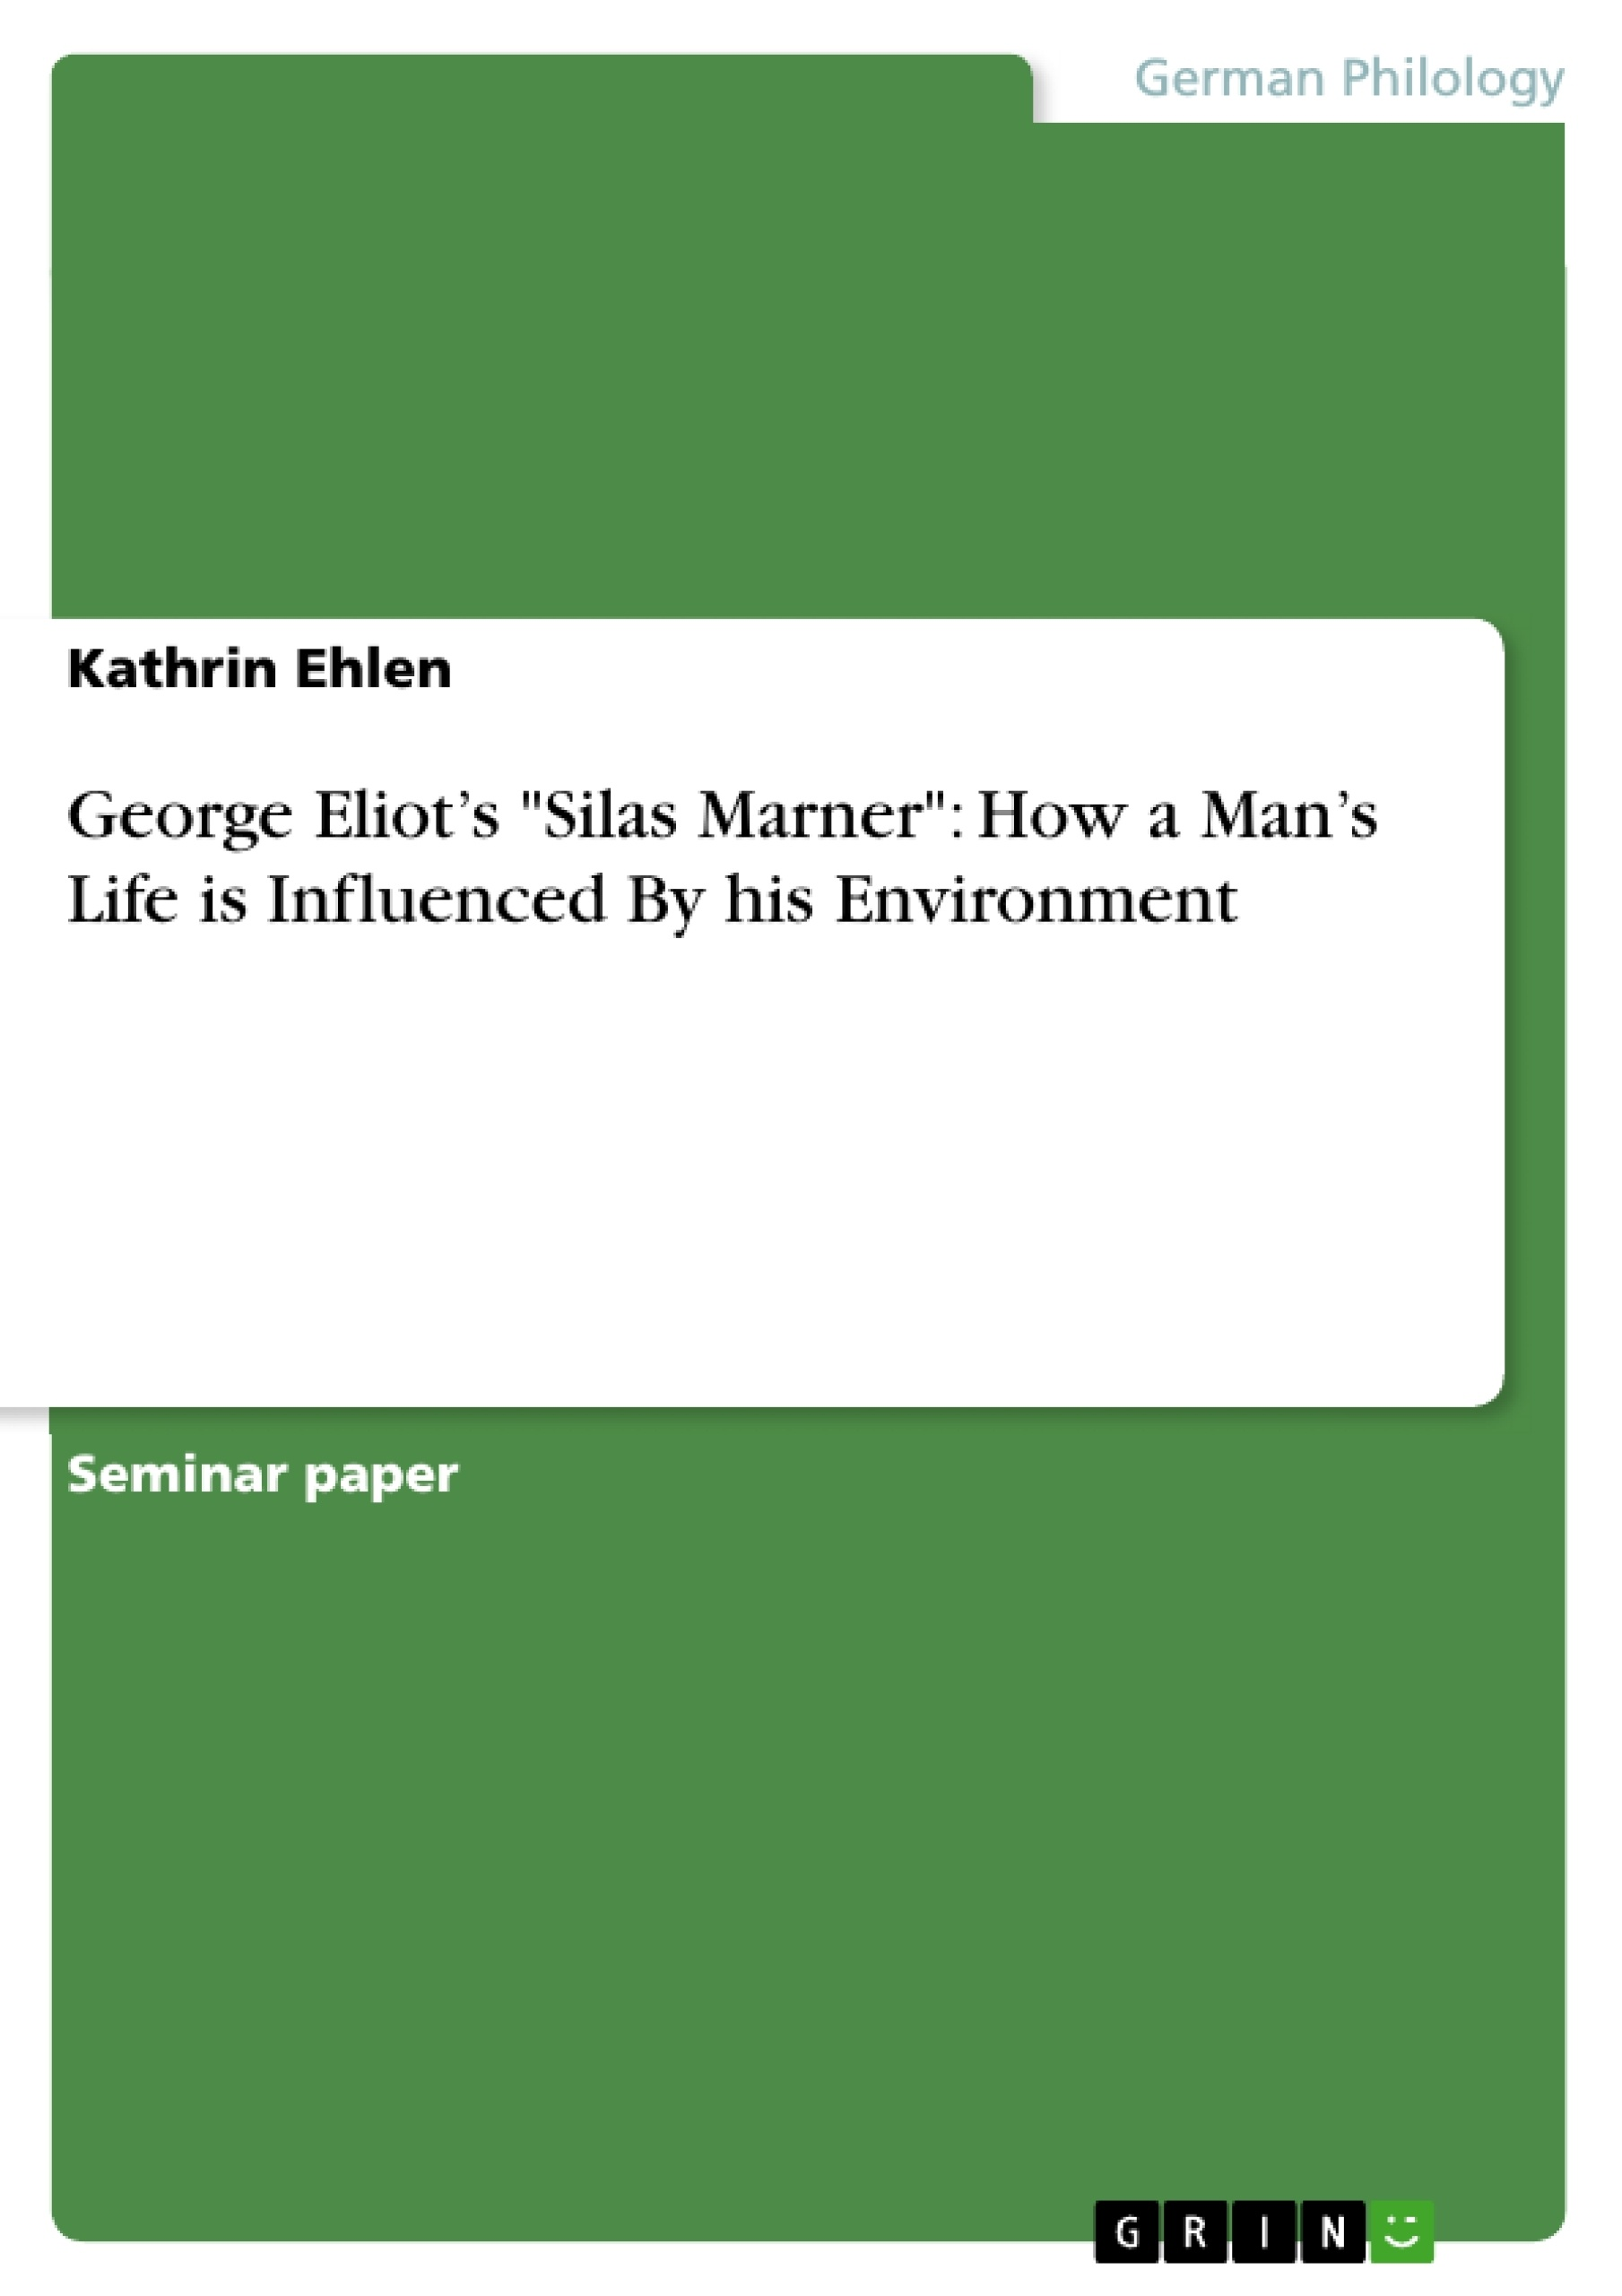 george eliot s silas marner how a man s life is influenced by george eliot s silas marner how a man s life is influenced by publish your master s thesis bachelor s thesis essay or term paper